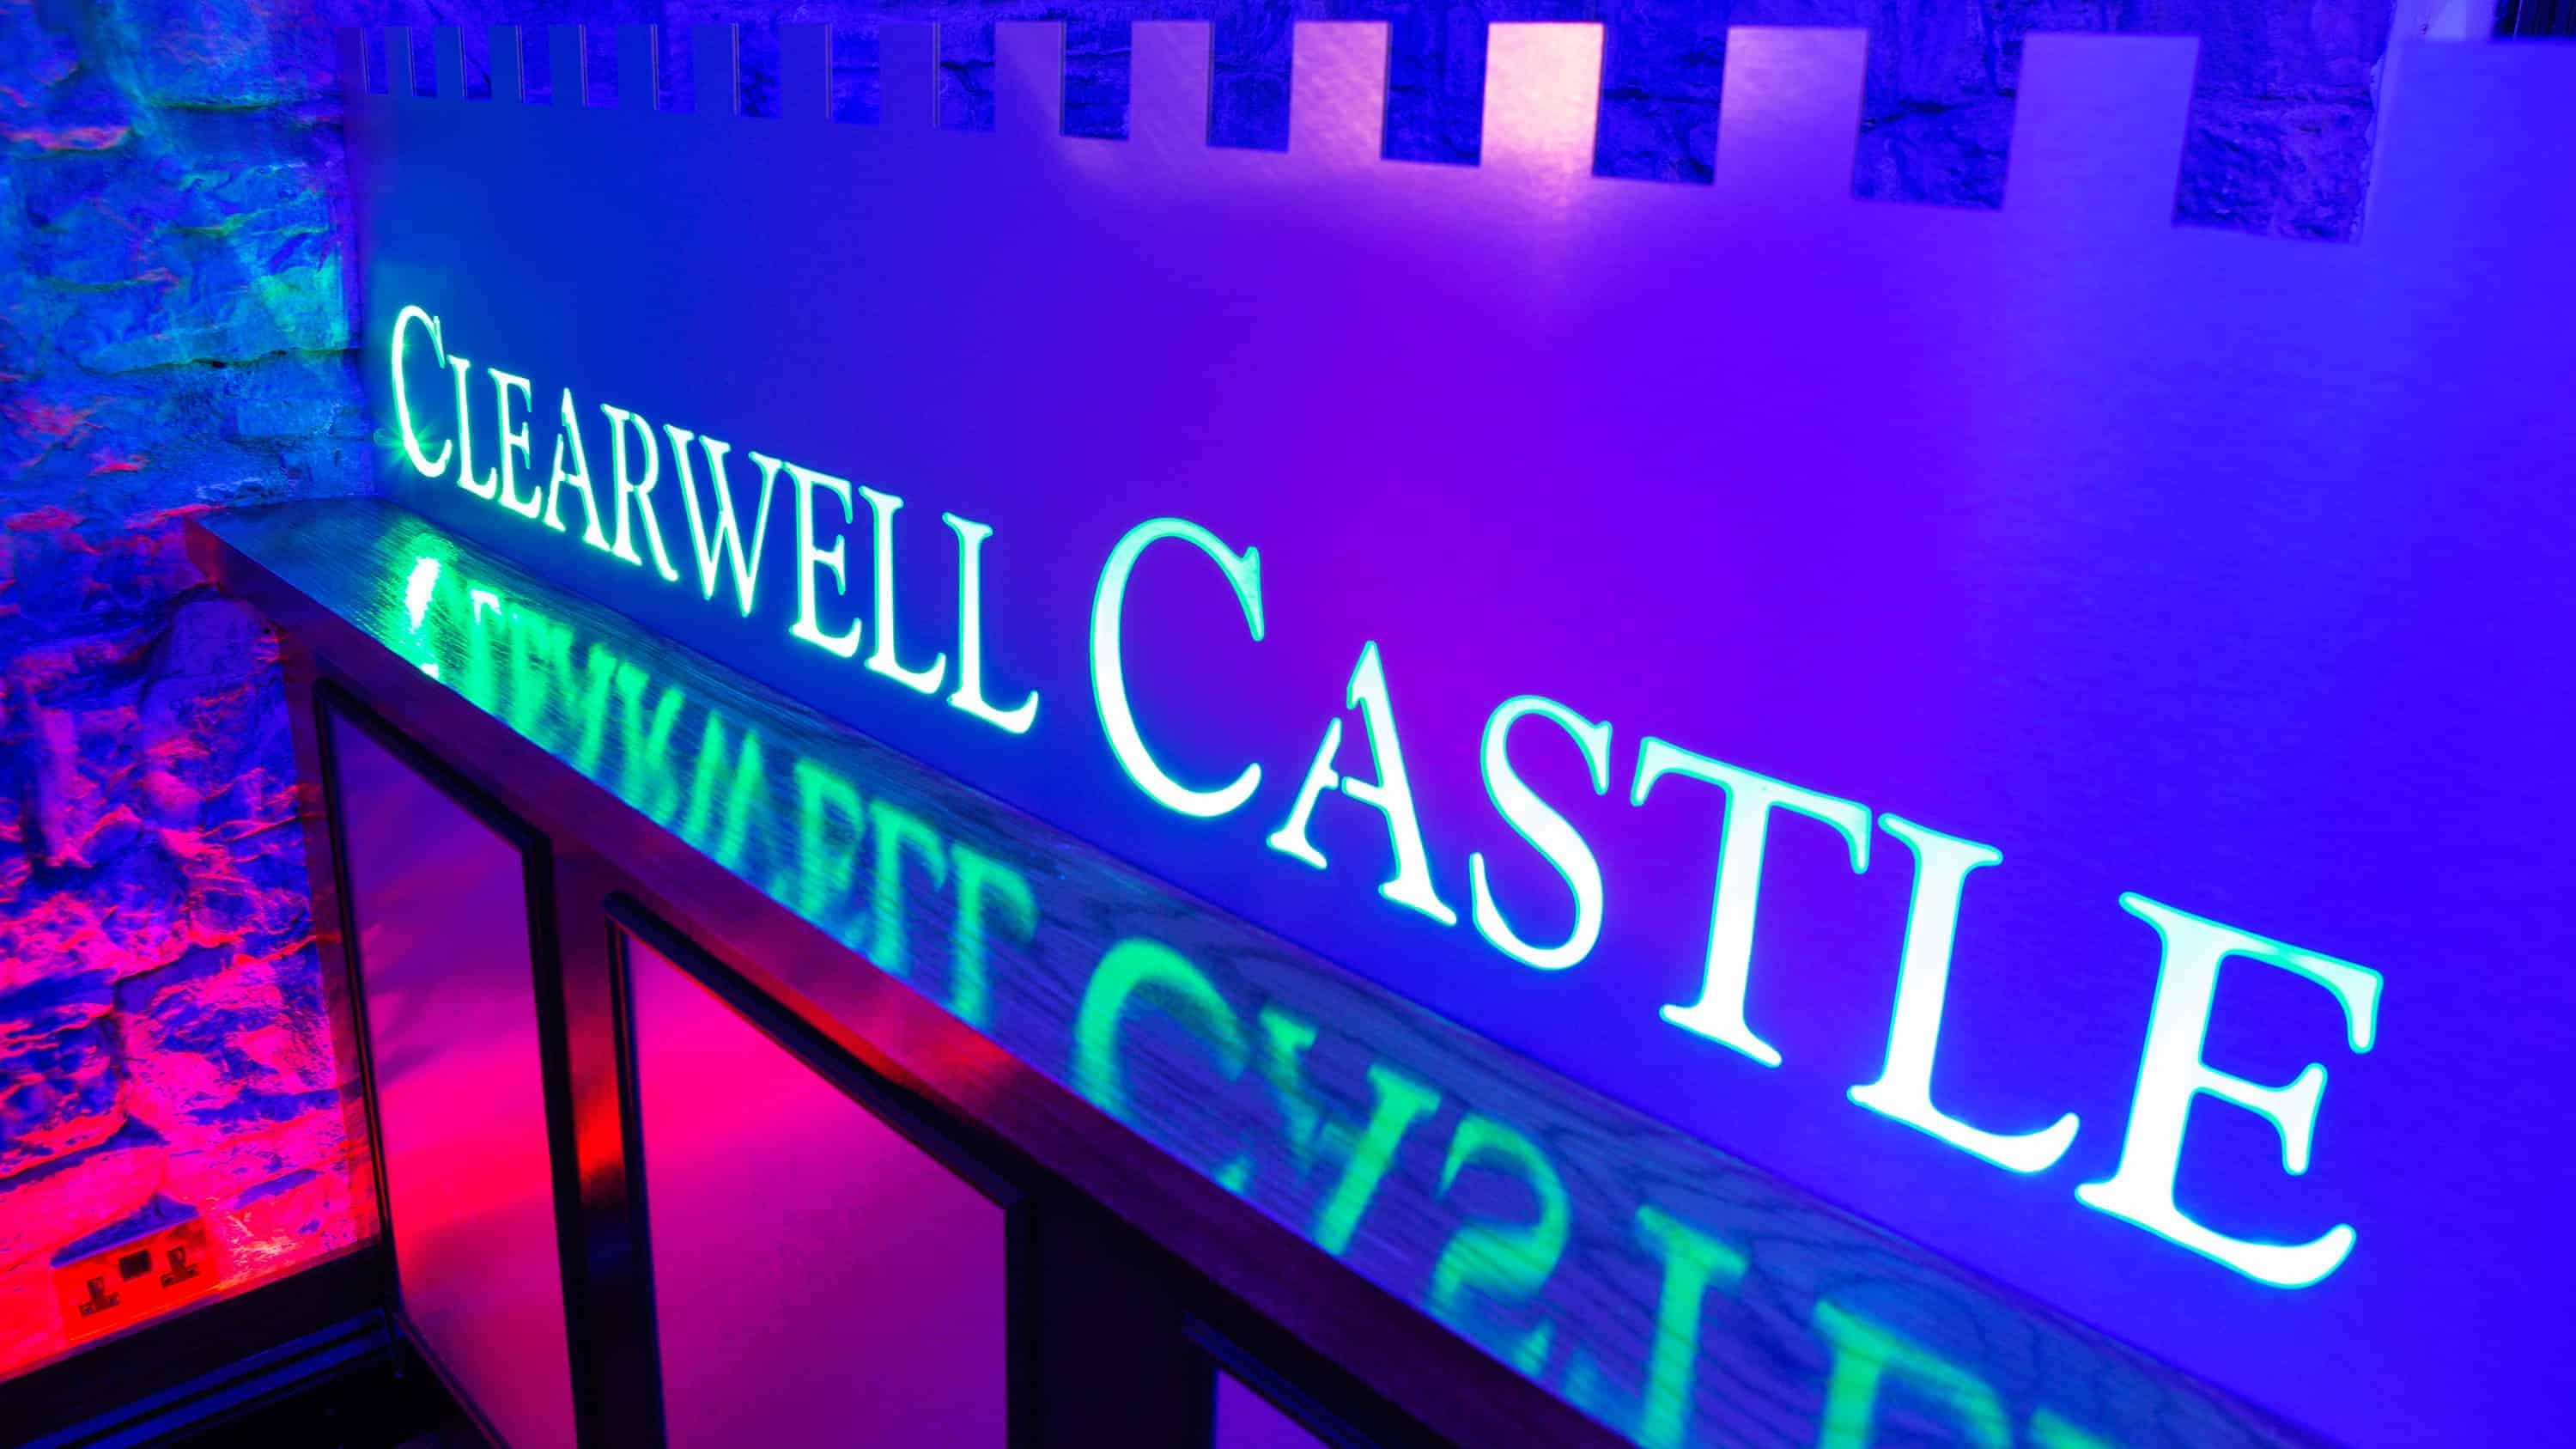 Clearwell Castle Bar